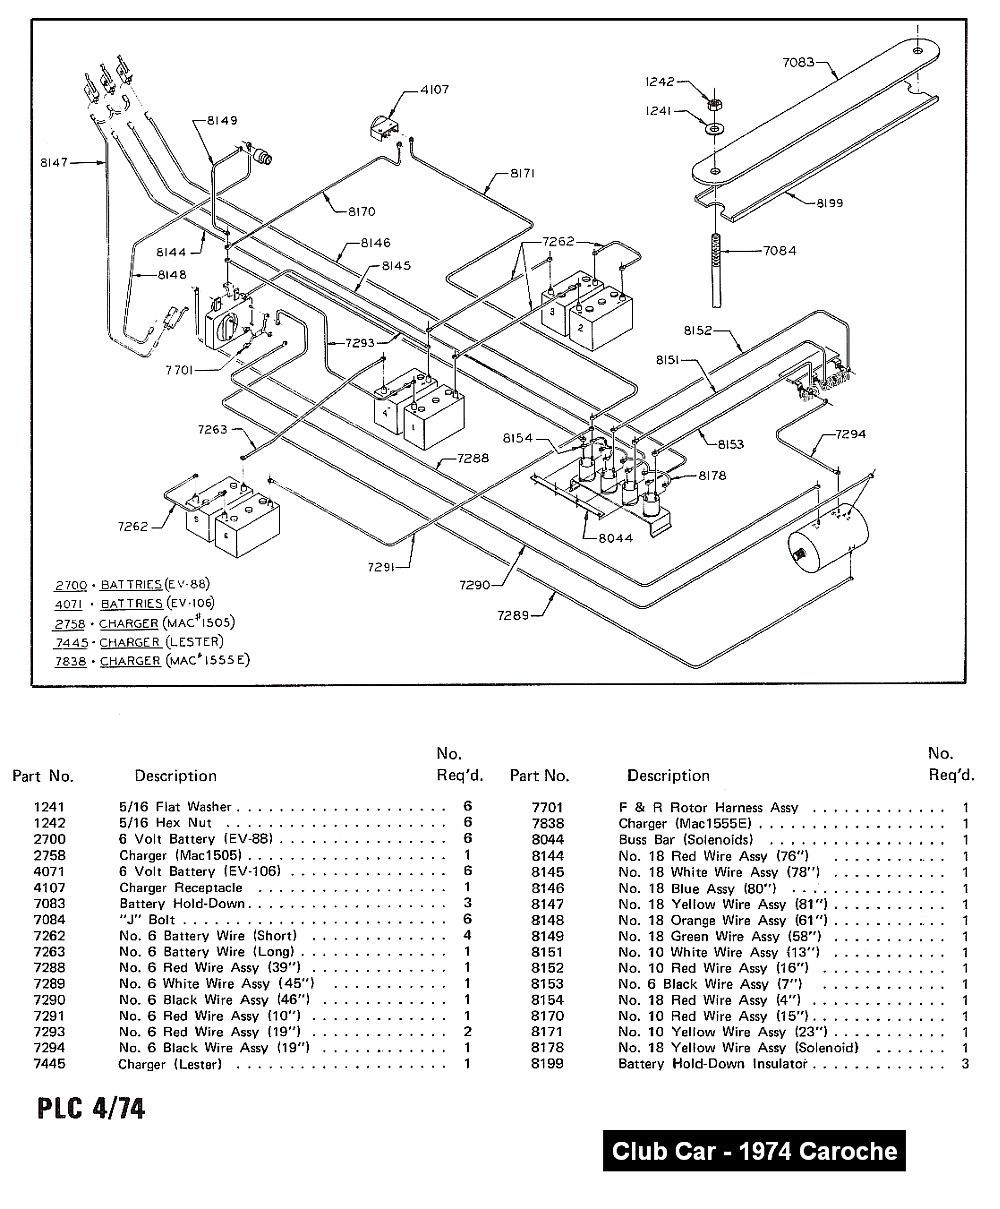 club car wiring diagram battery and engine club car golf cart parts diagram | automotive parts ...